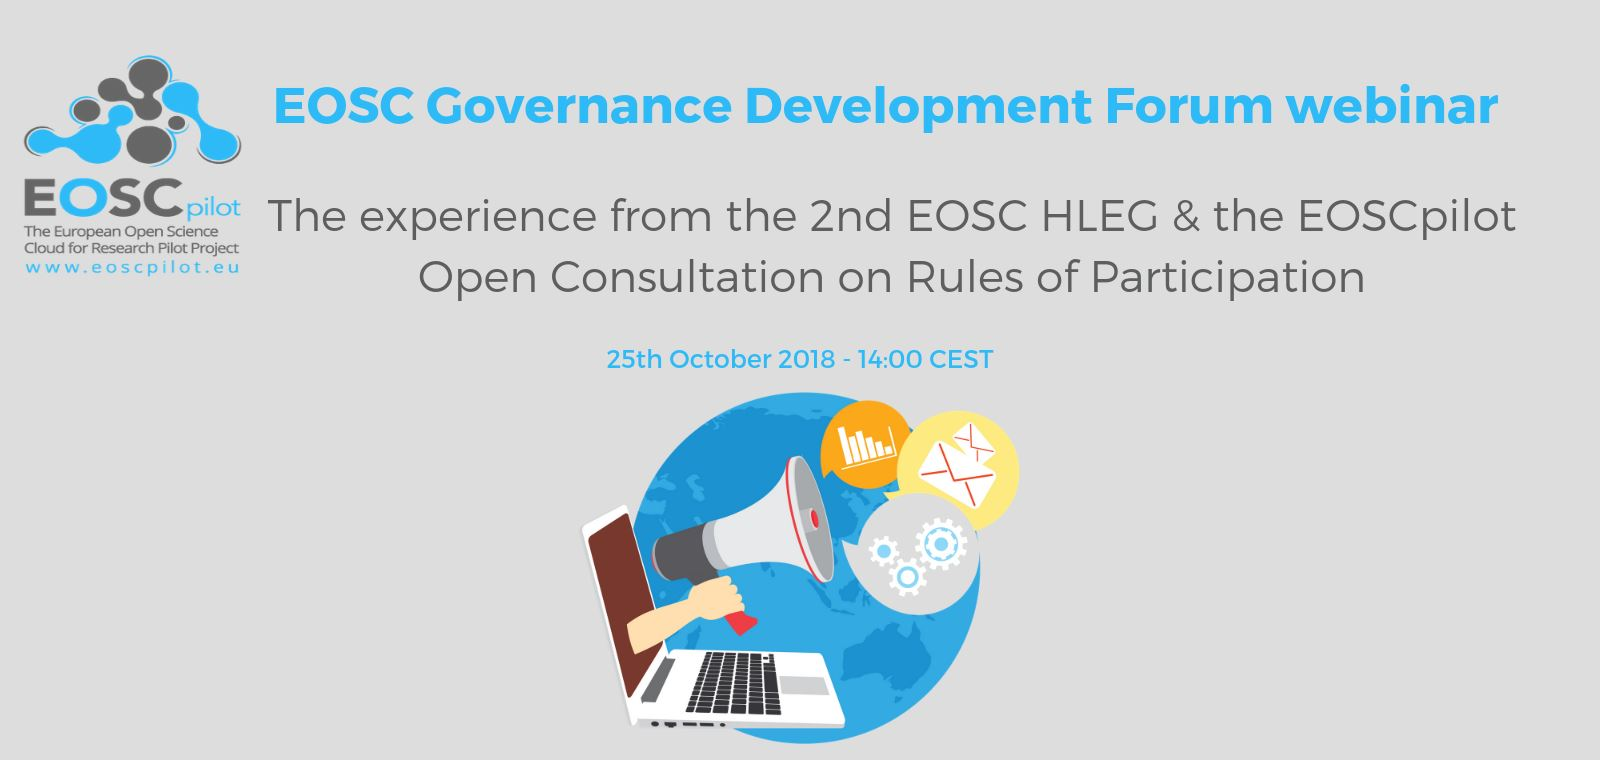 EOSC Governance Development Forum webinar – 25th October 2018